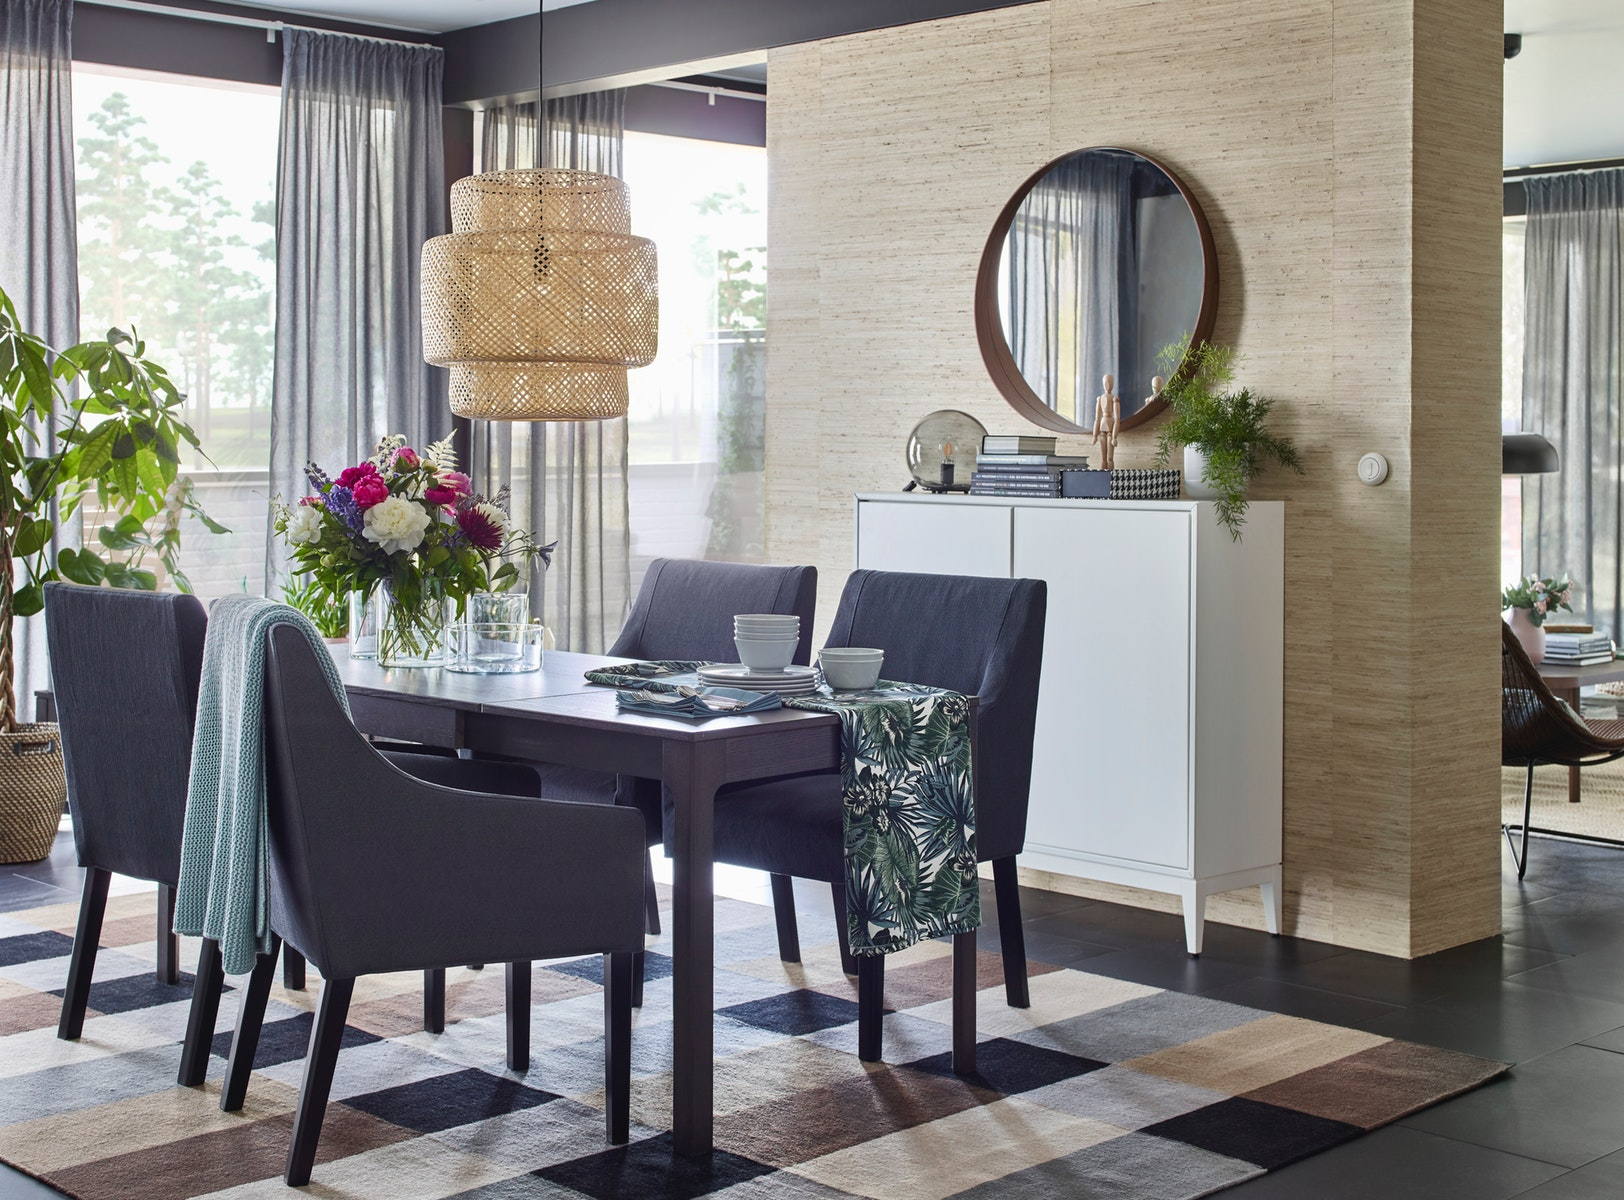 Bring a new touch to the dining room on Eid al-Fitr